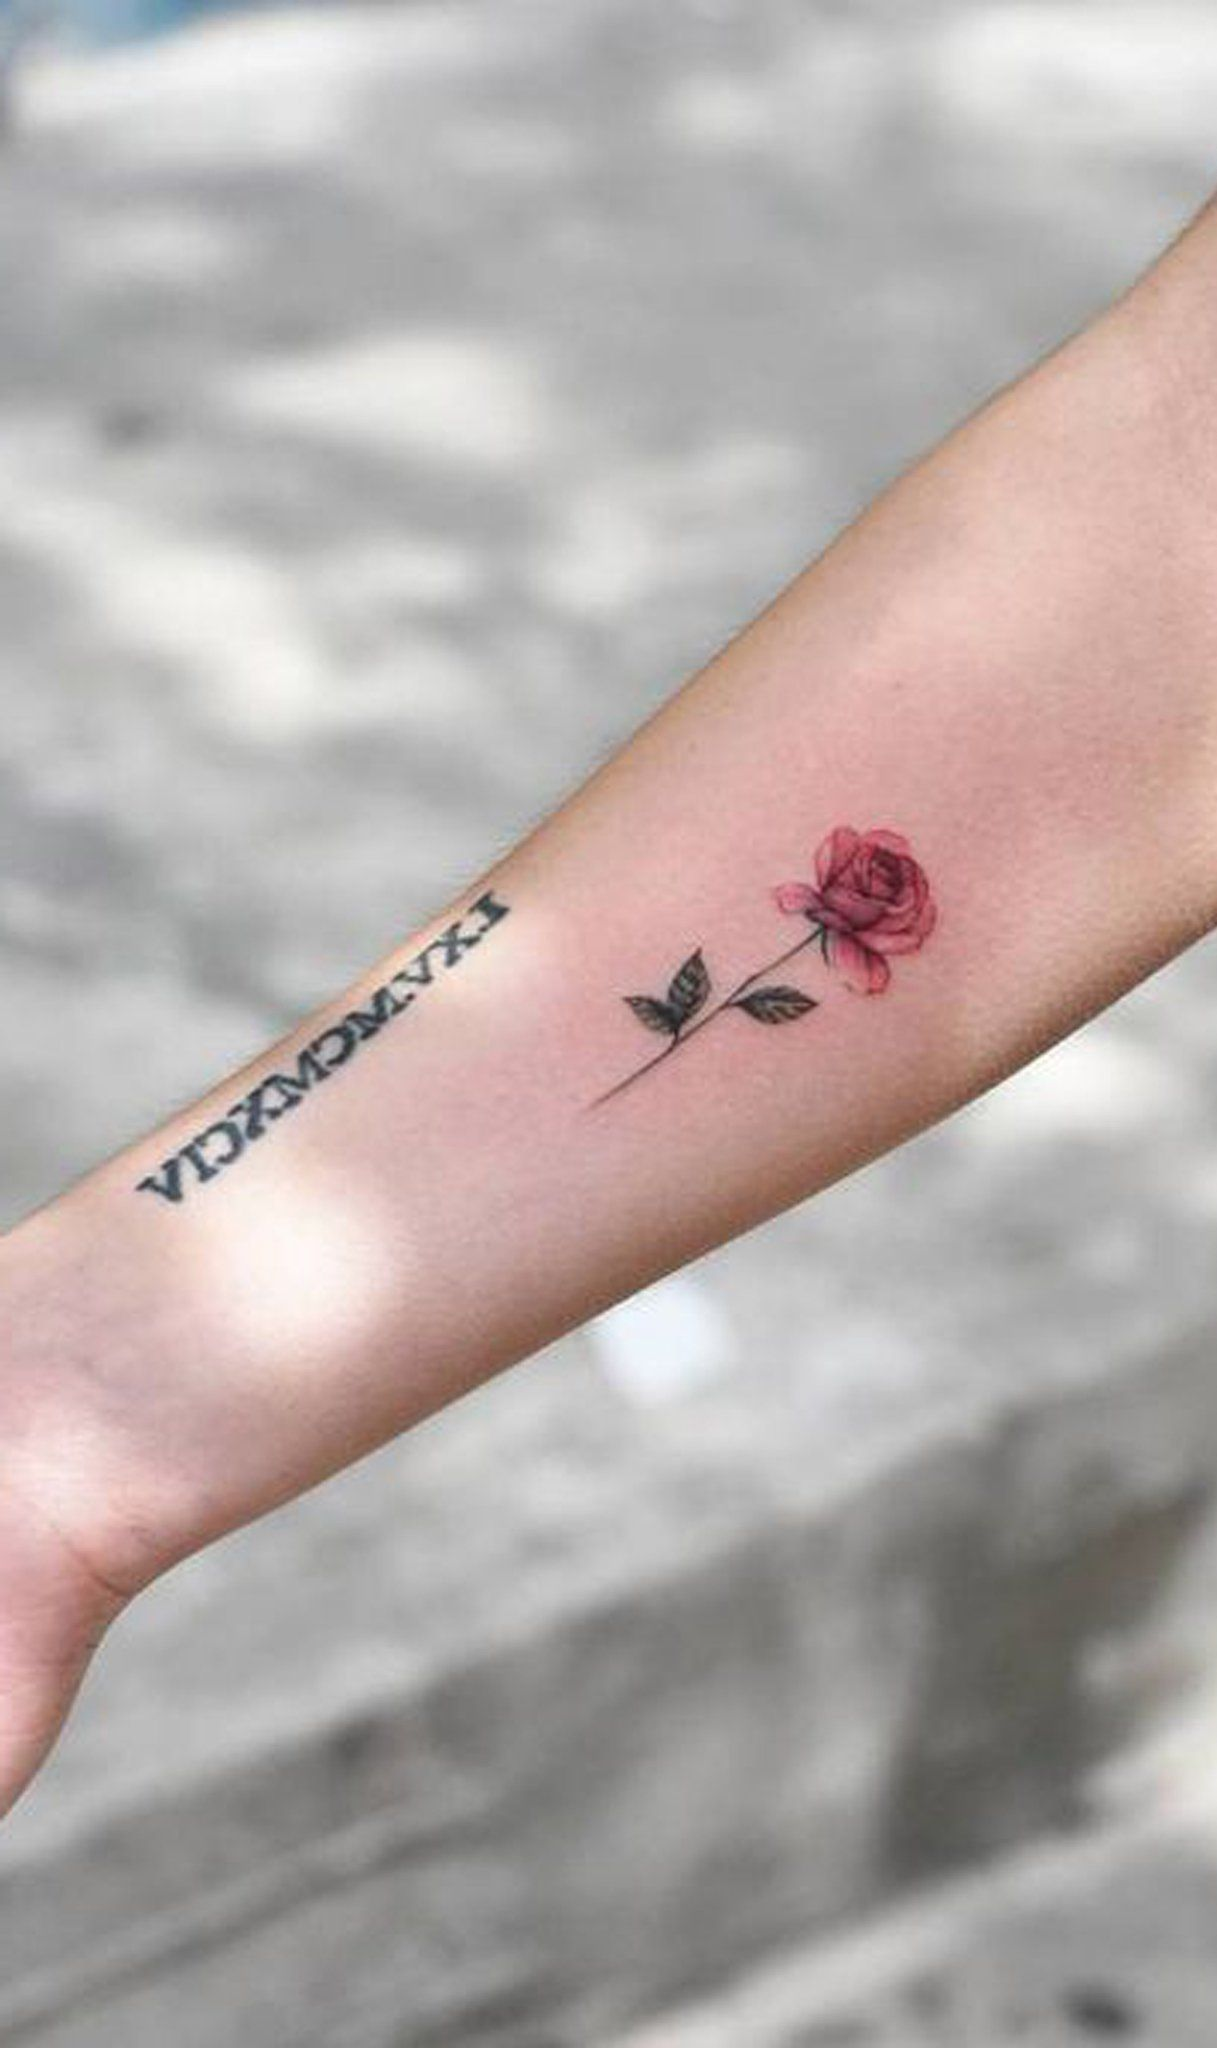 Tattoo Of Rose Small: 30+ Simple And Small Flower Tattoos Ideas For Women